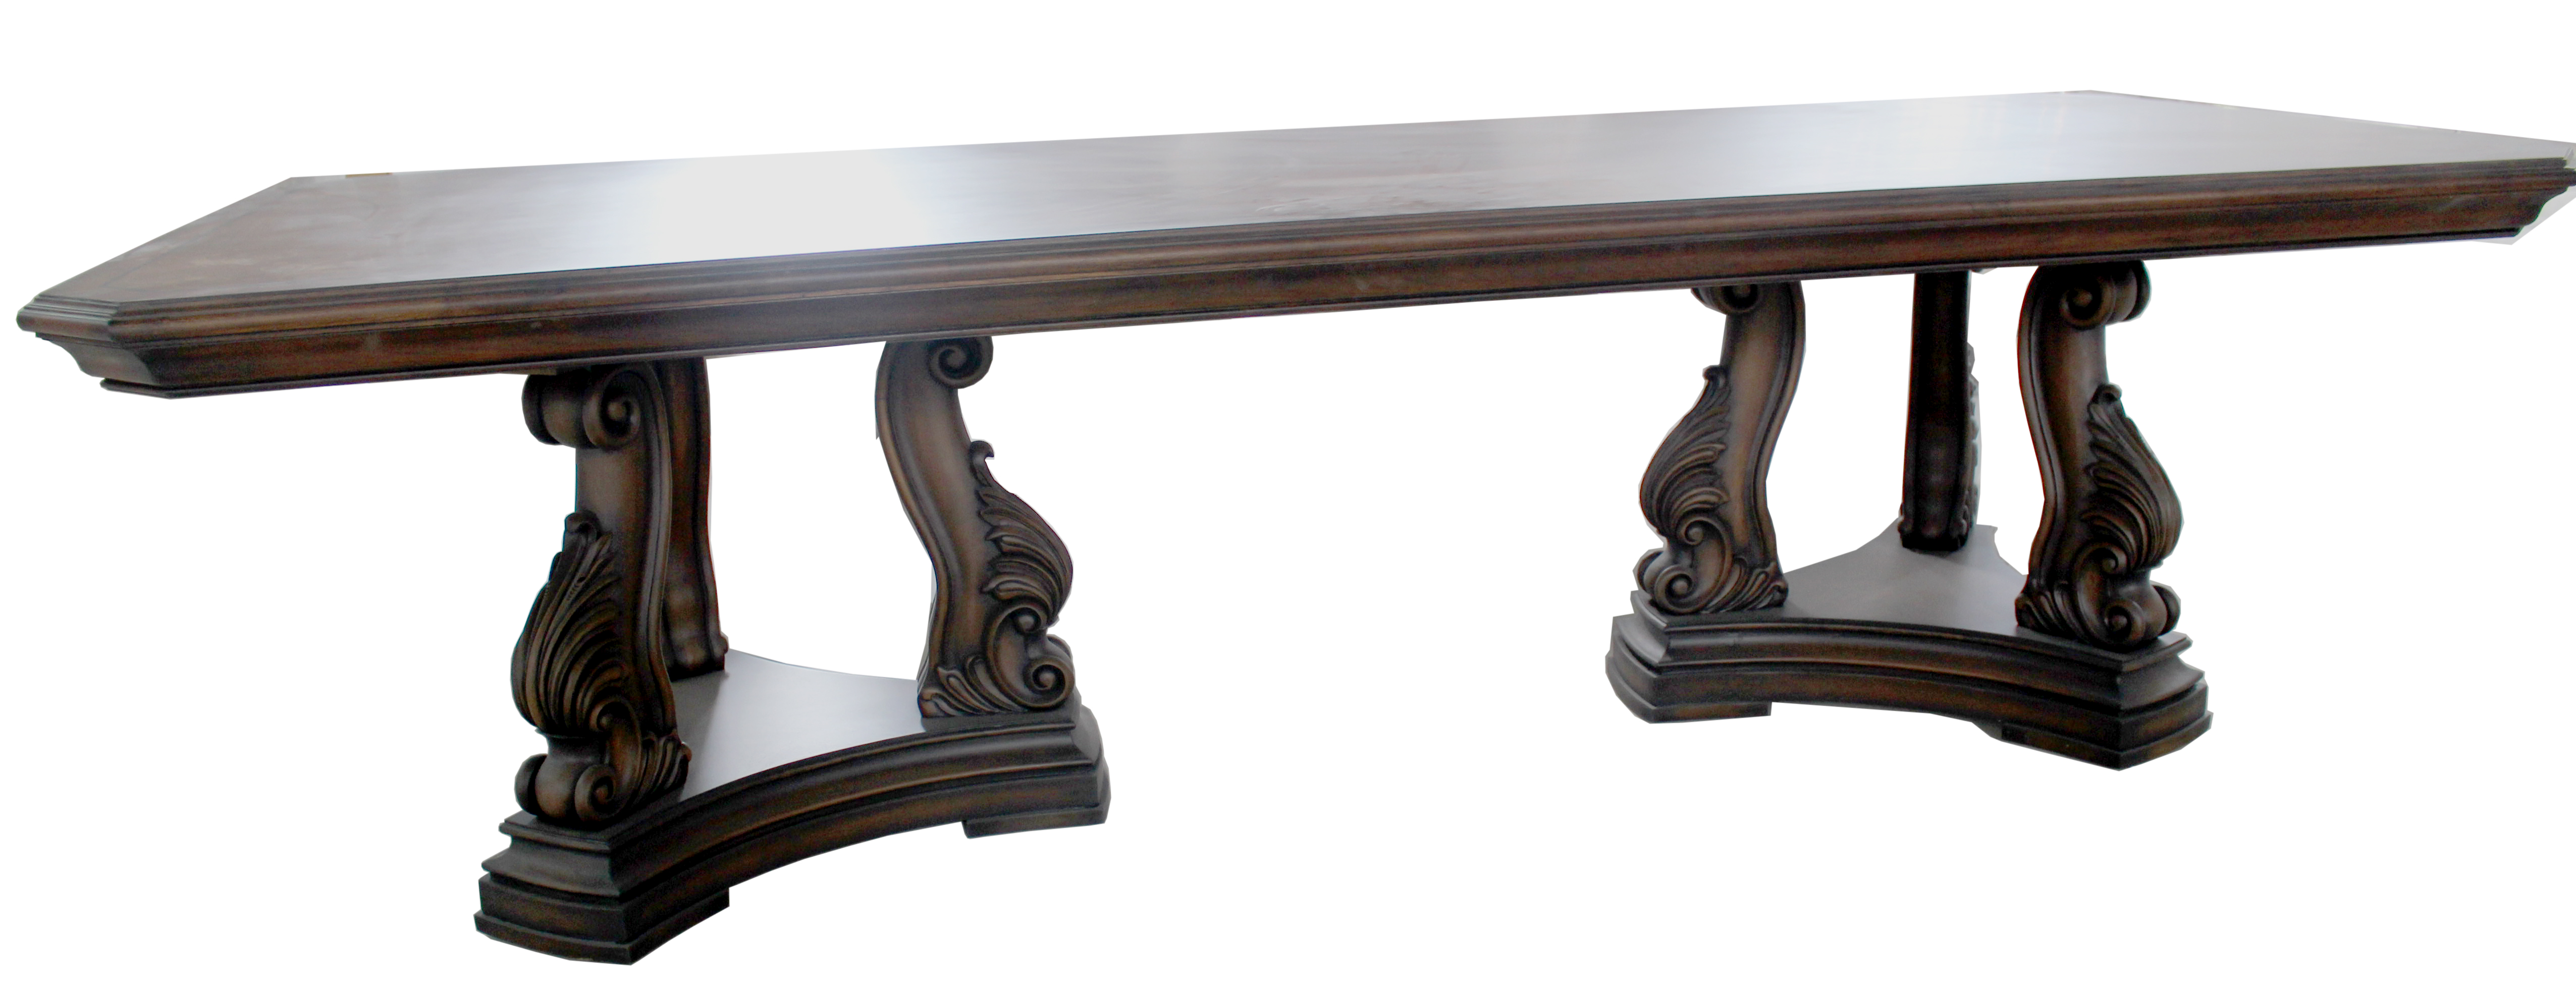 Dining room tables 027